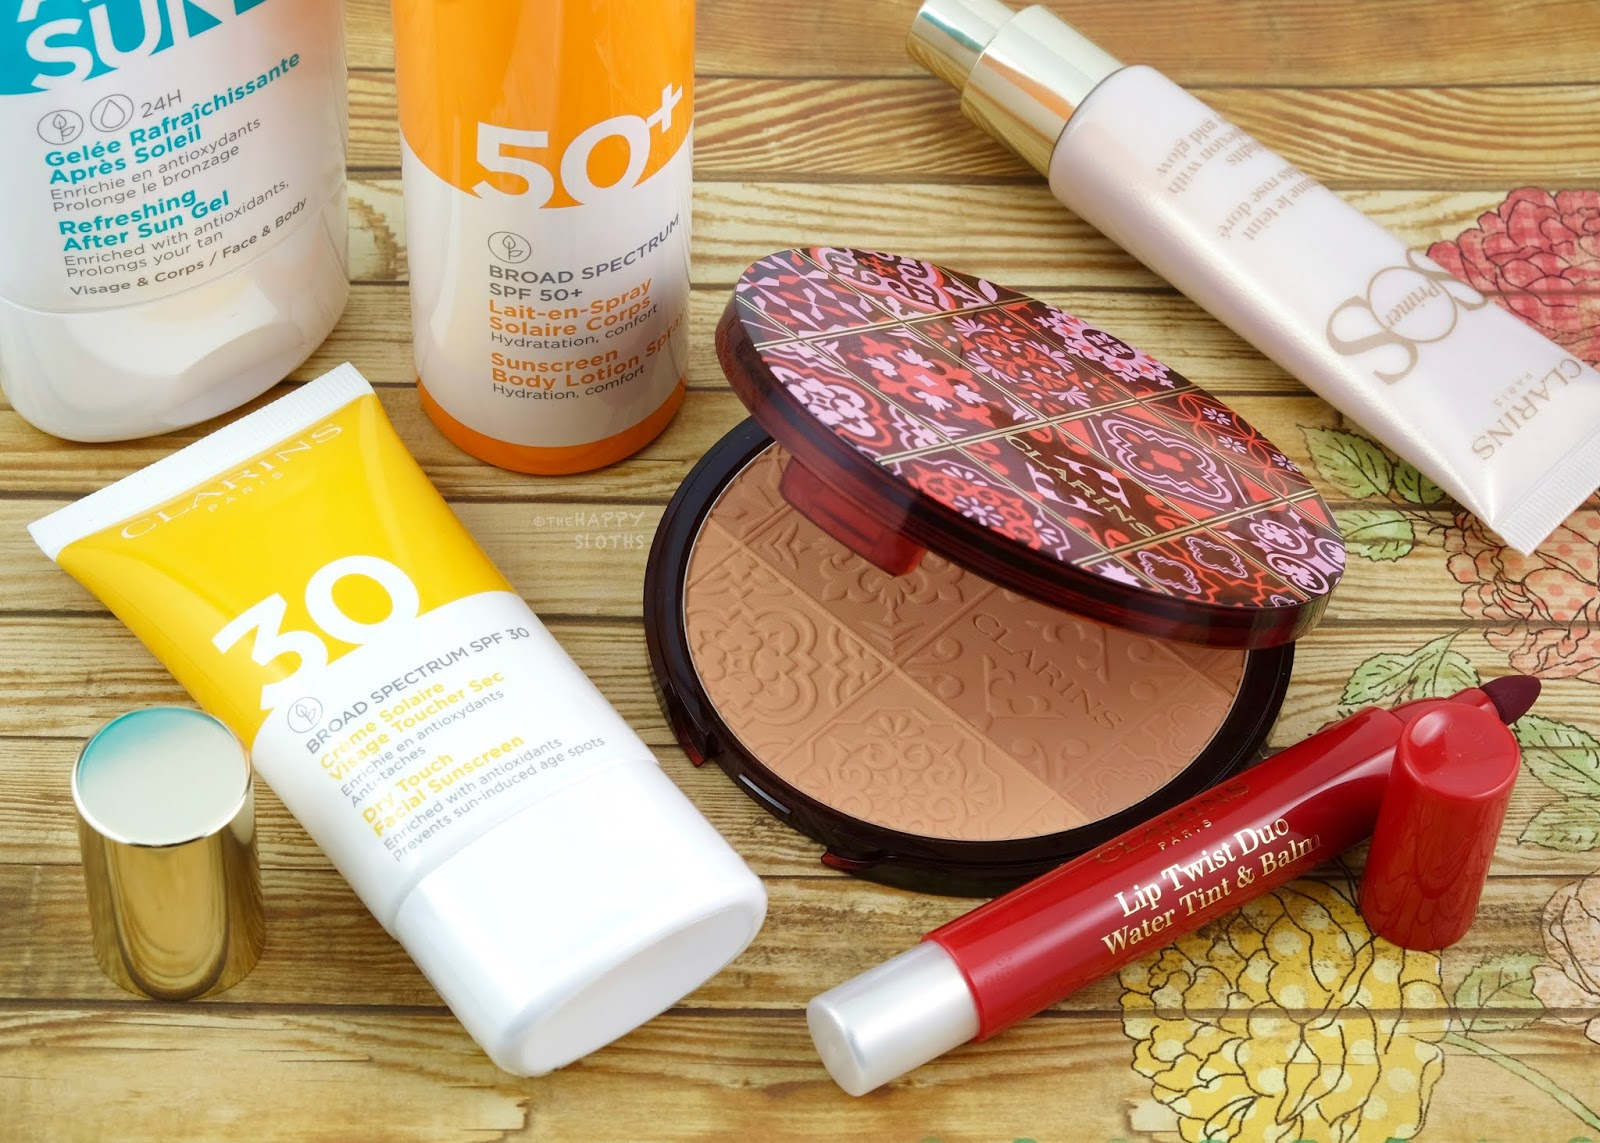 Clarins | Summer 2020 Sunkissed Collection: Review and Swatches